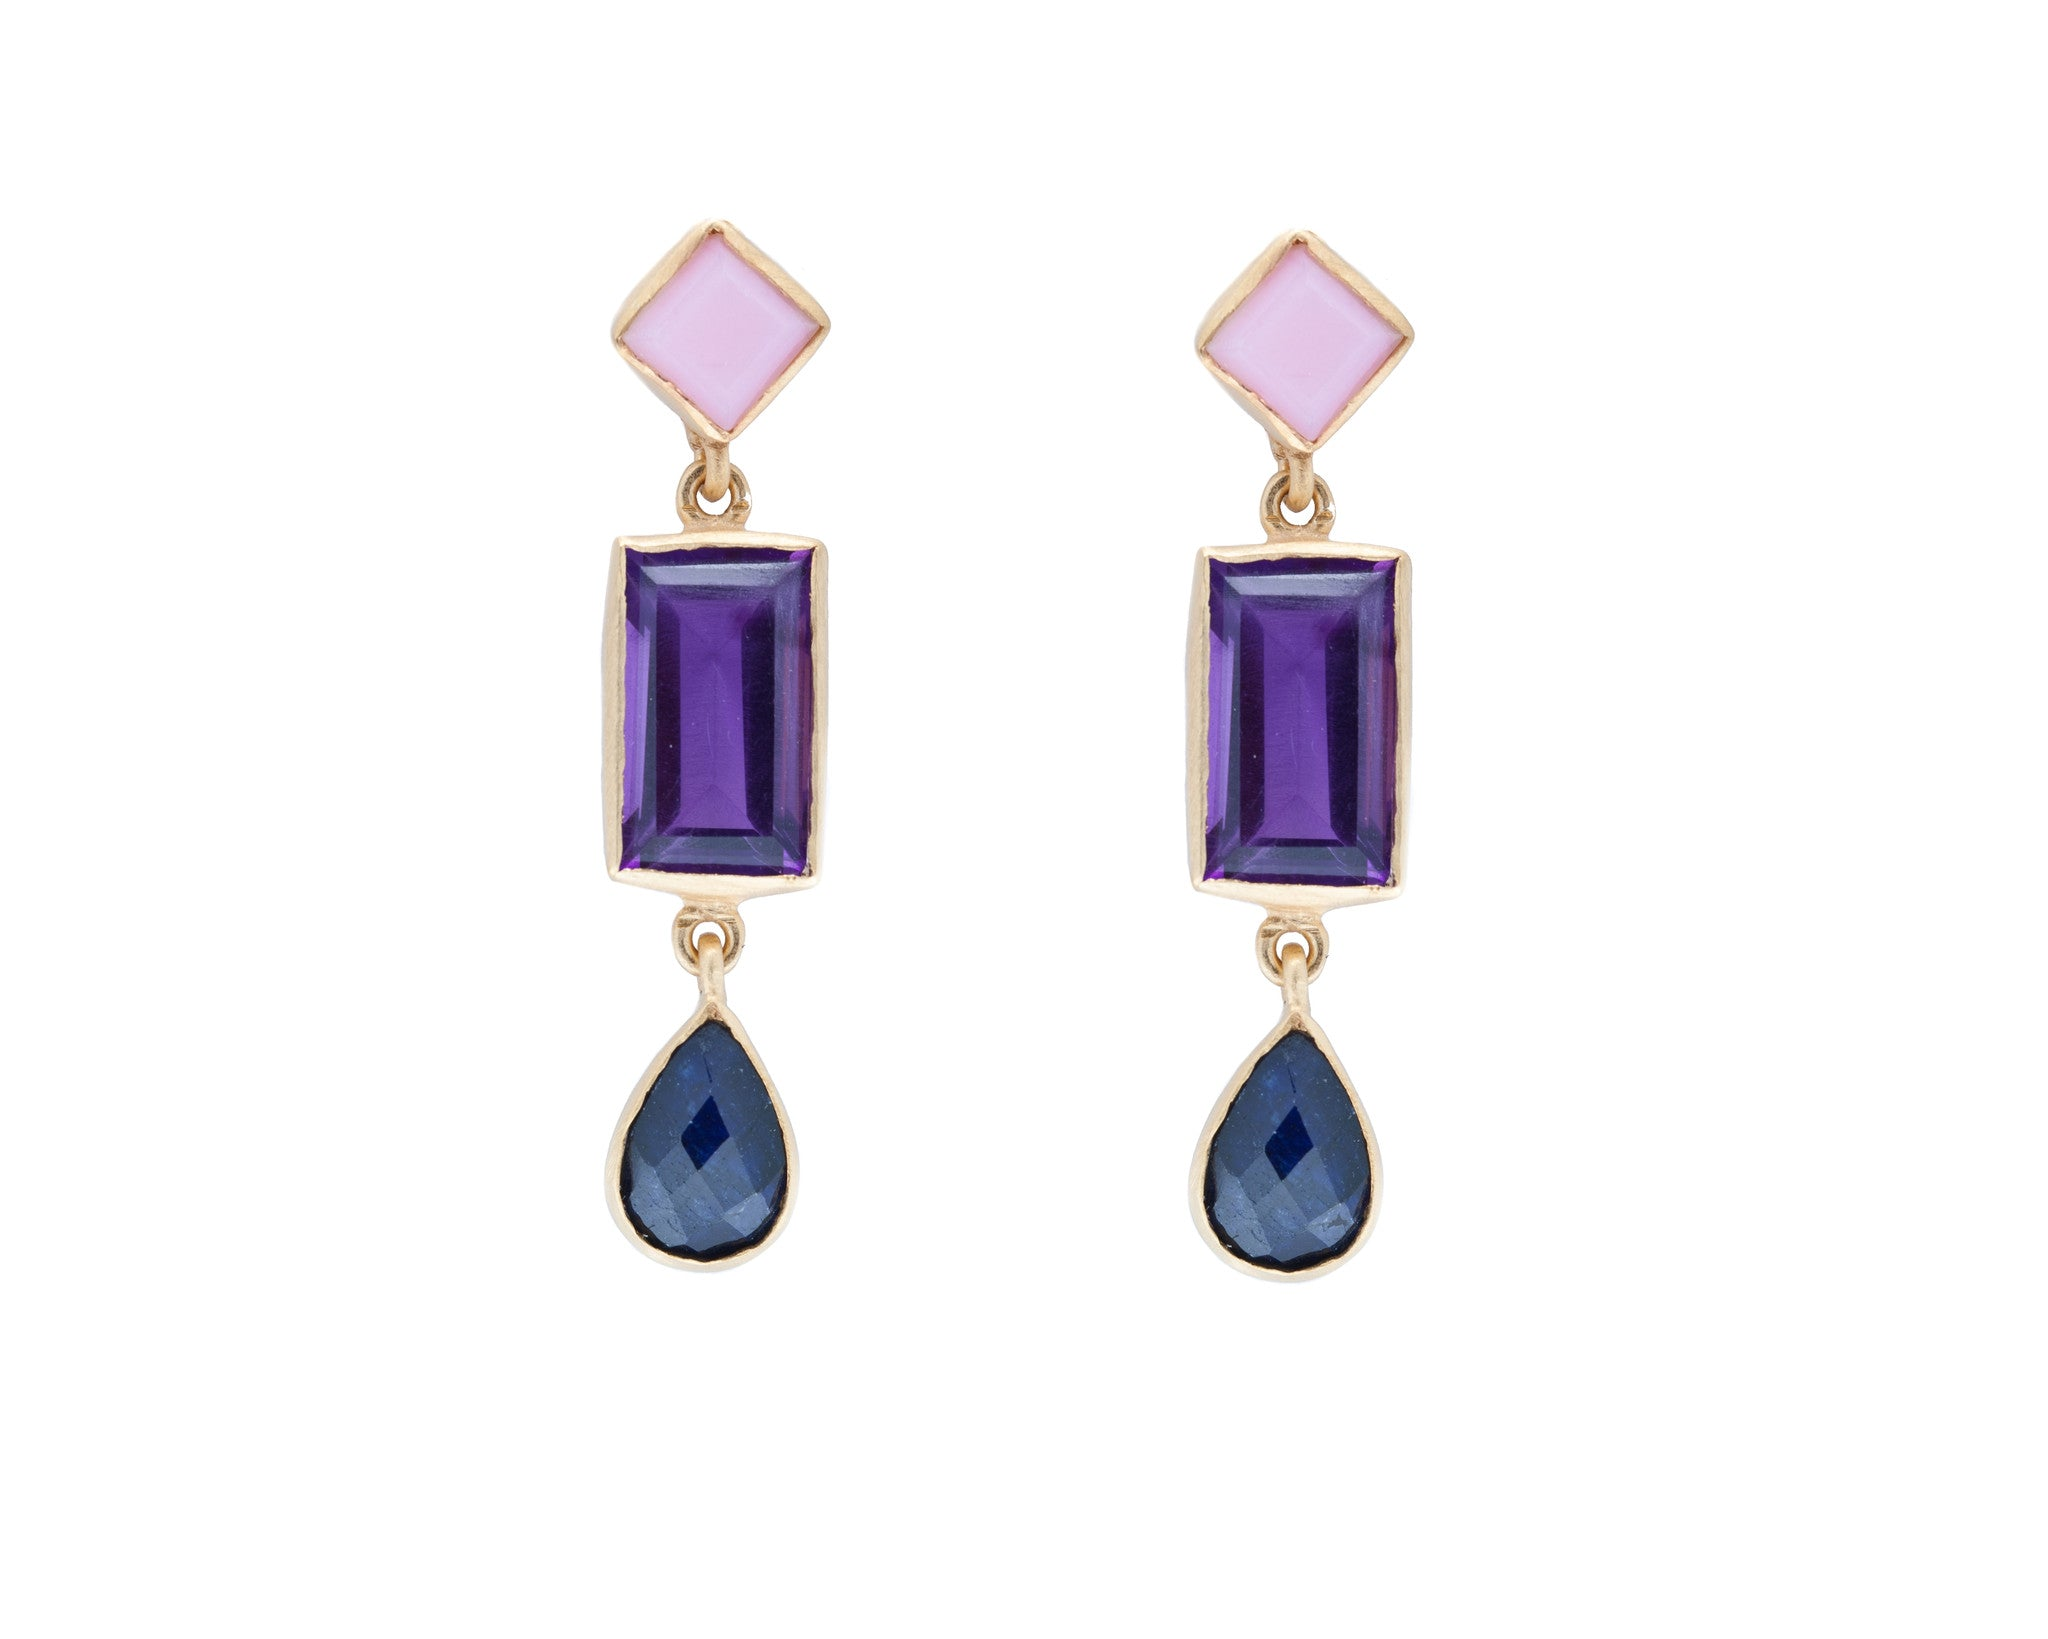 Pink Peruvian Opal, Purple Amethyst and Blue Sapphire Drop Earrings from the Raindrop Collection